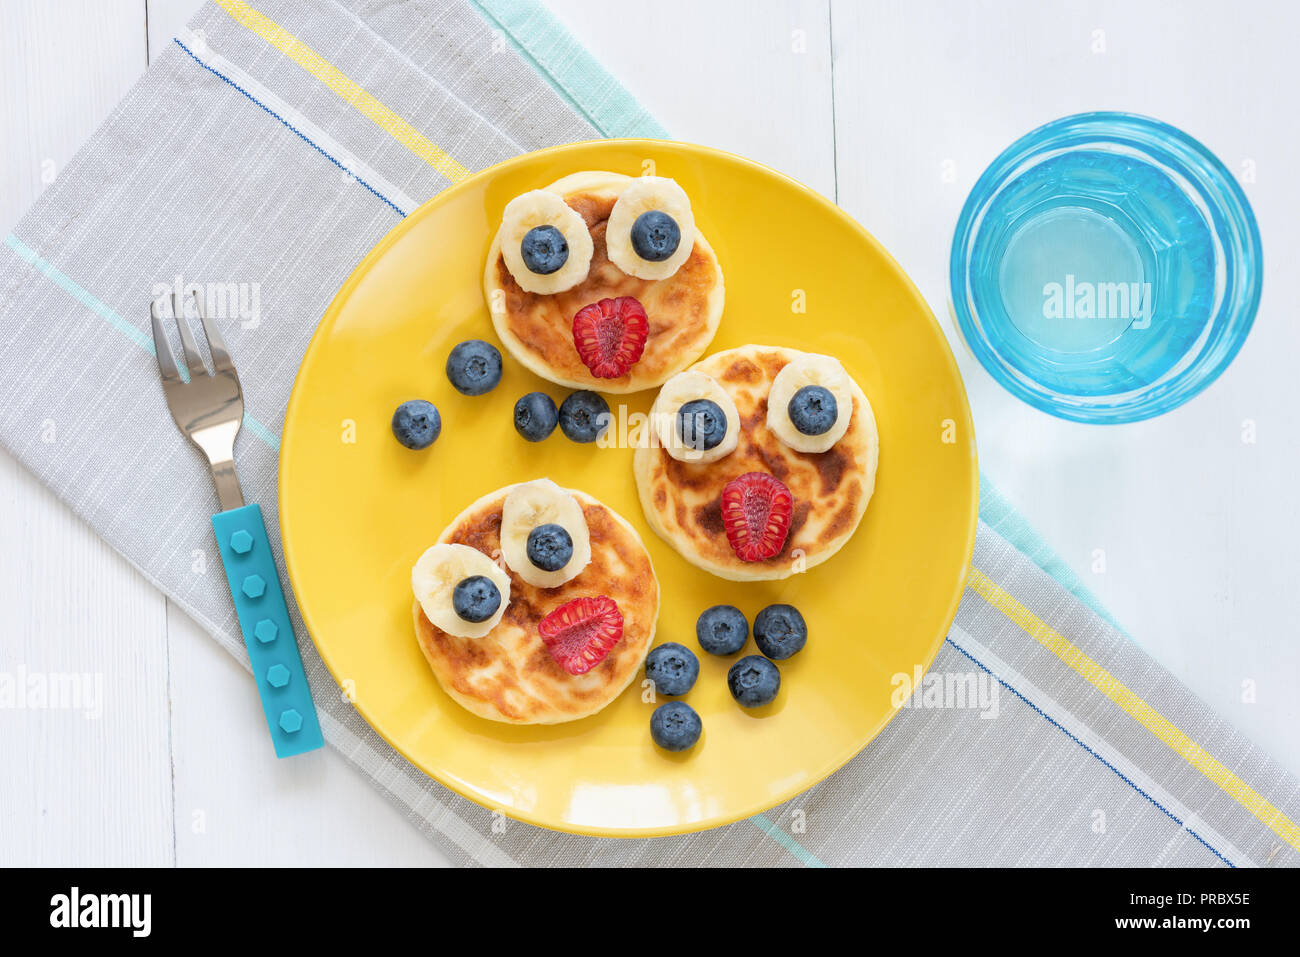 Breakfast pancakes for kids. Funny cute animal shaped pancakes on a yellow plate. Top view. Food art - Stock Image